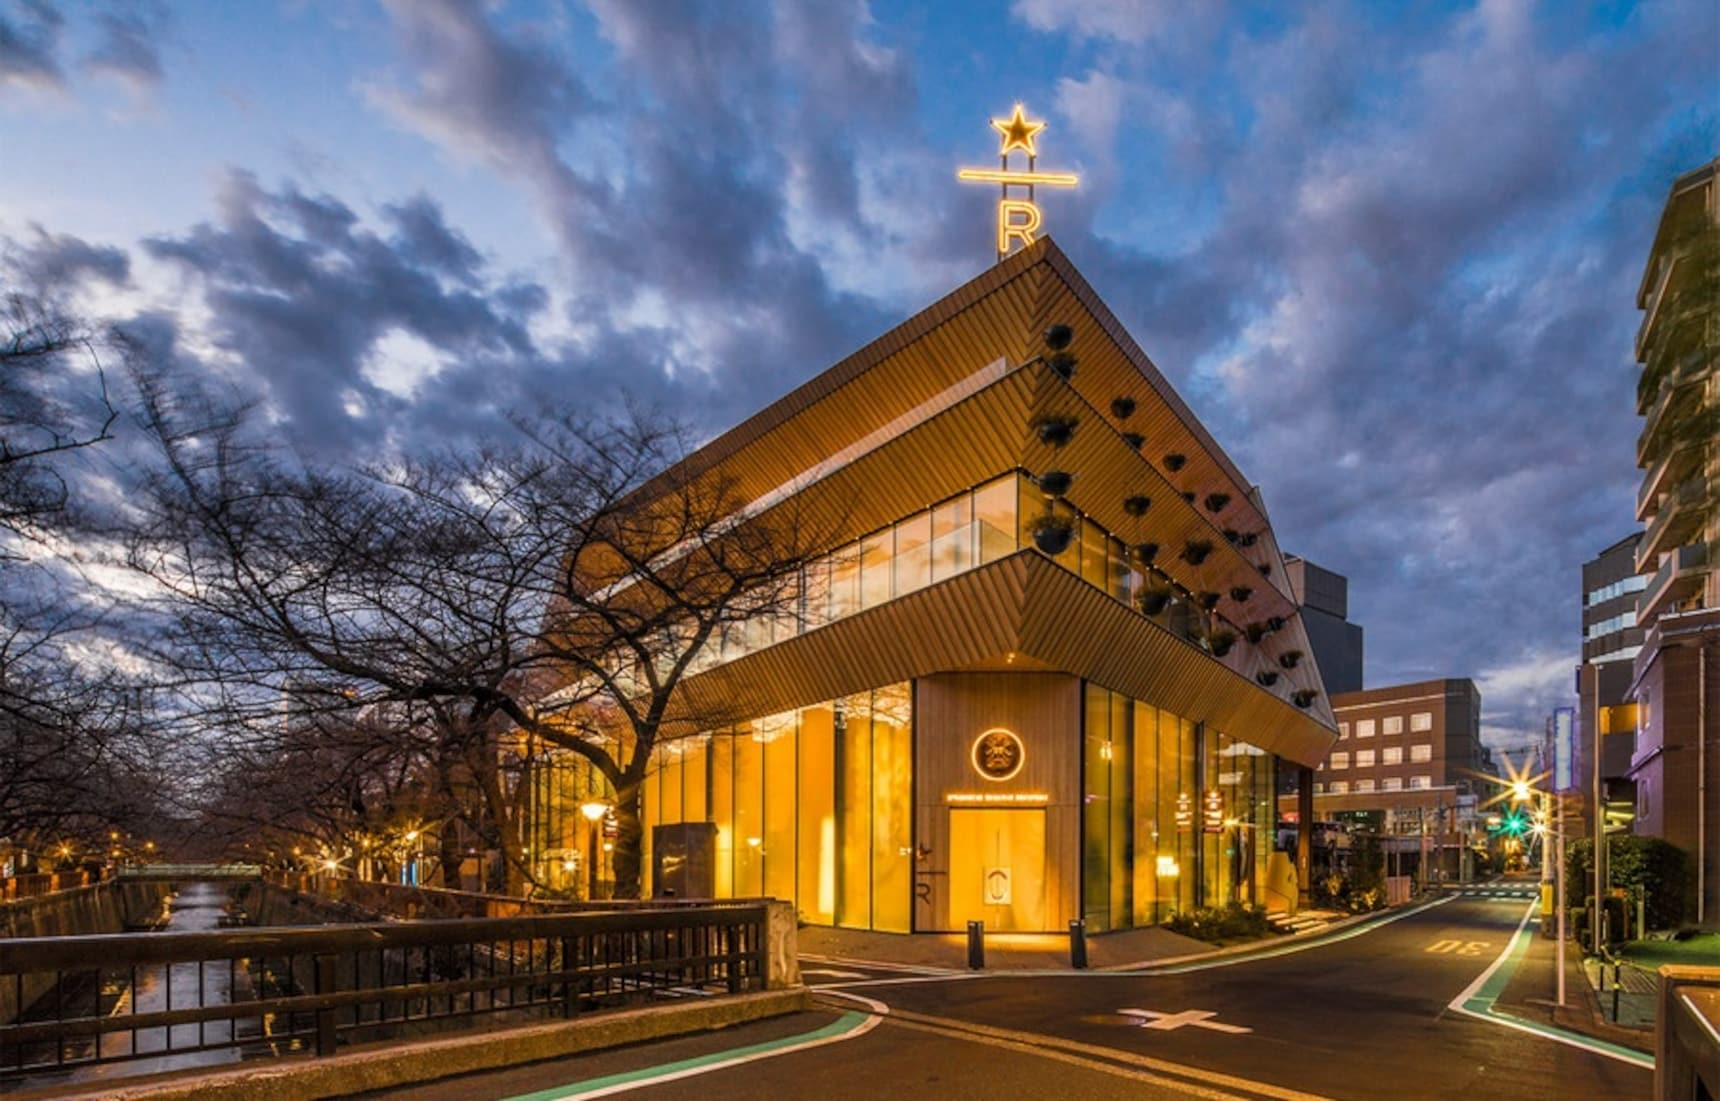 Japan is Home to World's Largest Starbucks